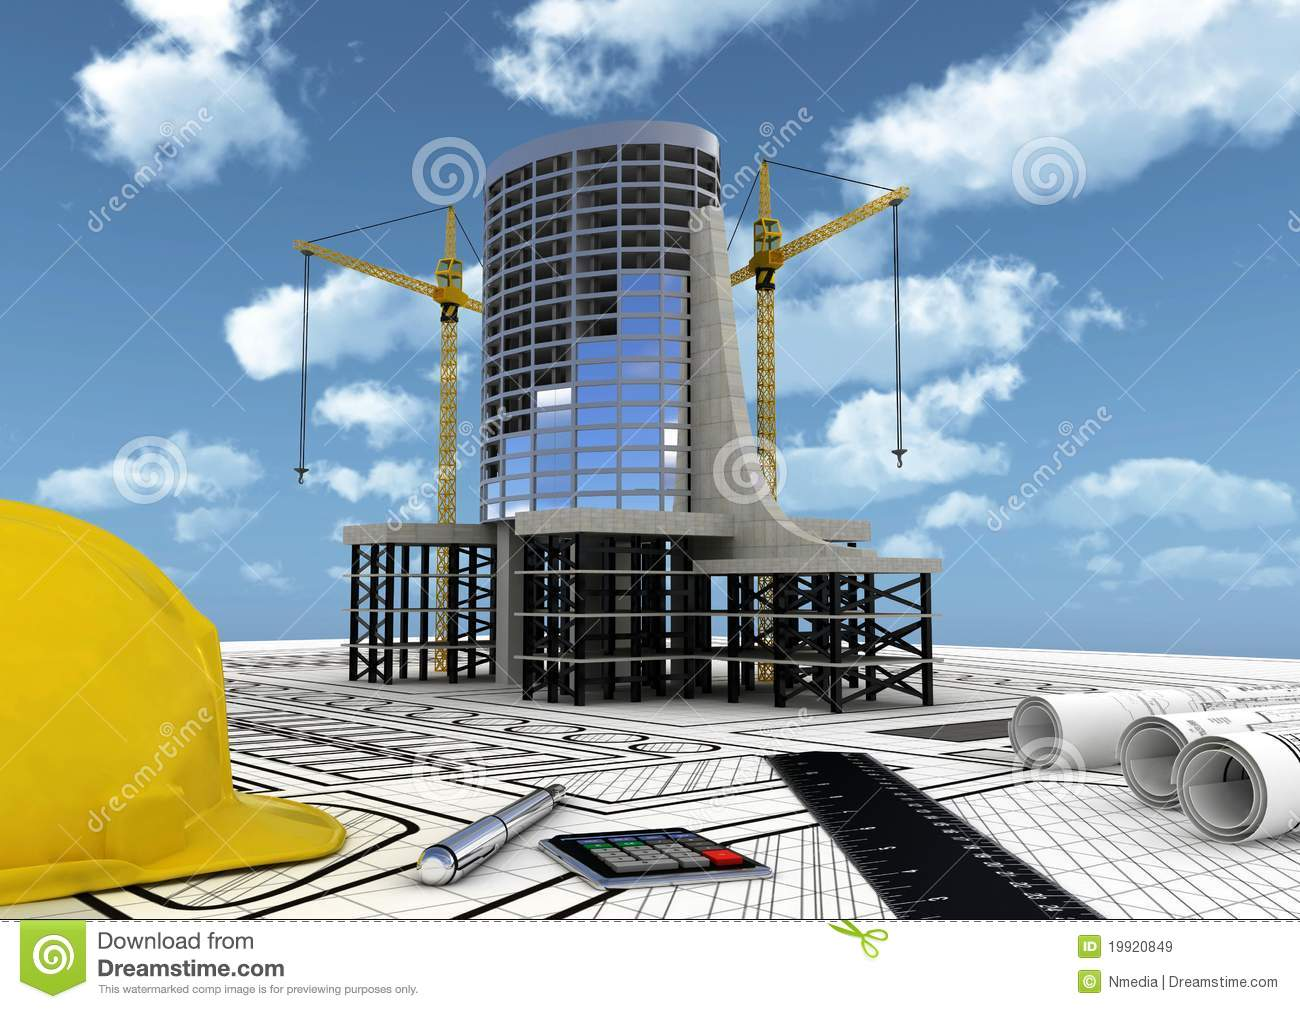 Building Construction Projects Building Construction Concept Royalty Free Stock Images